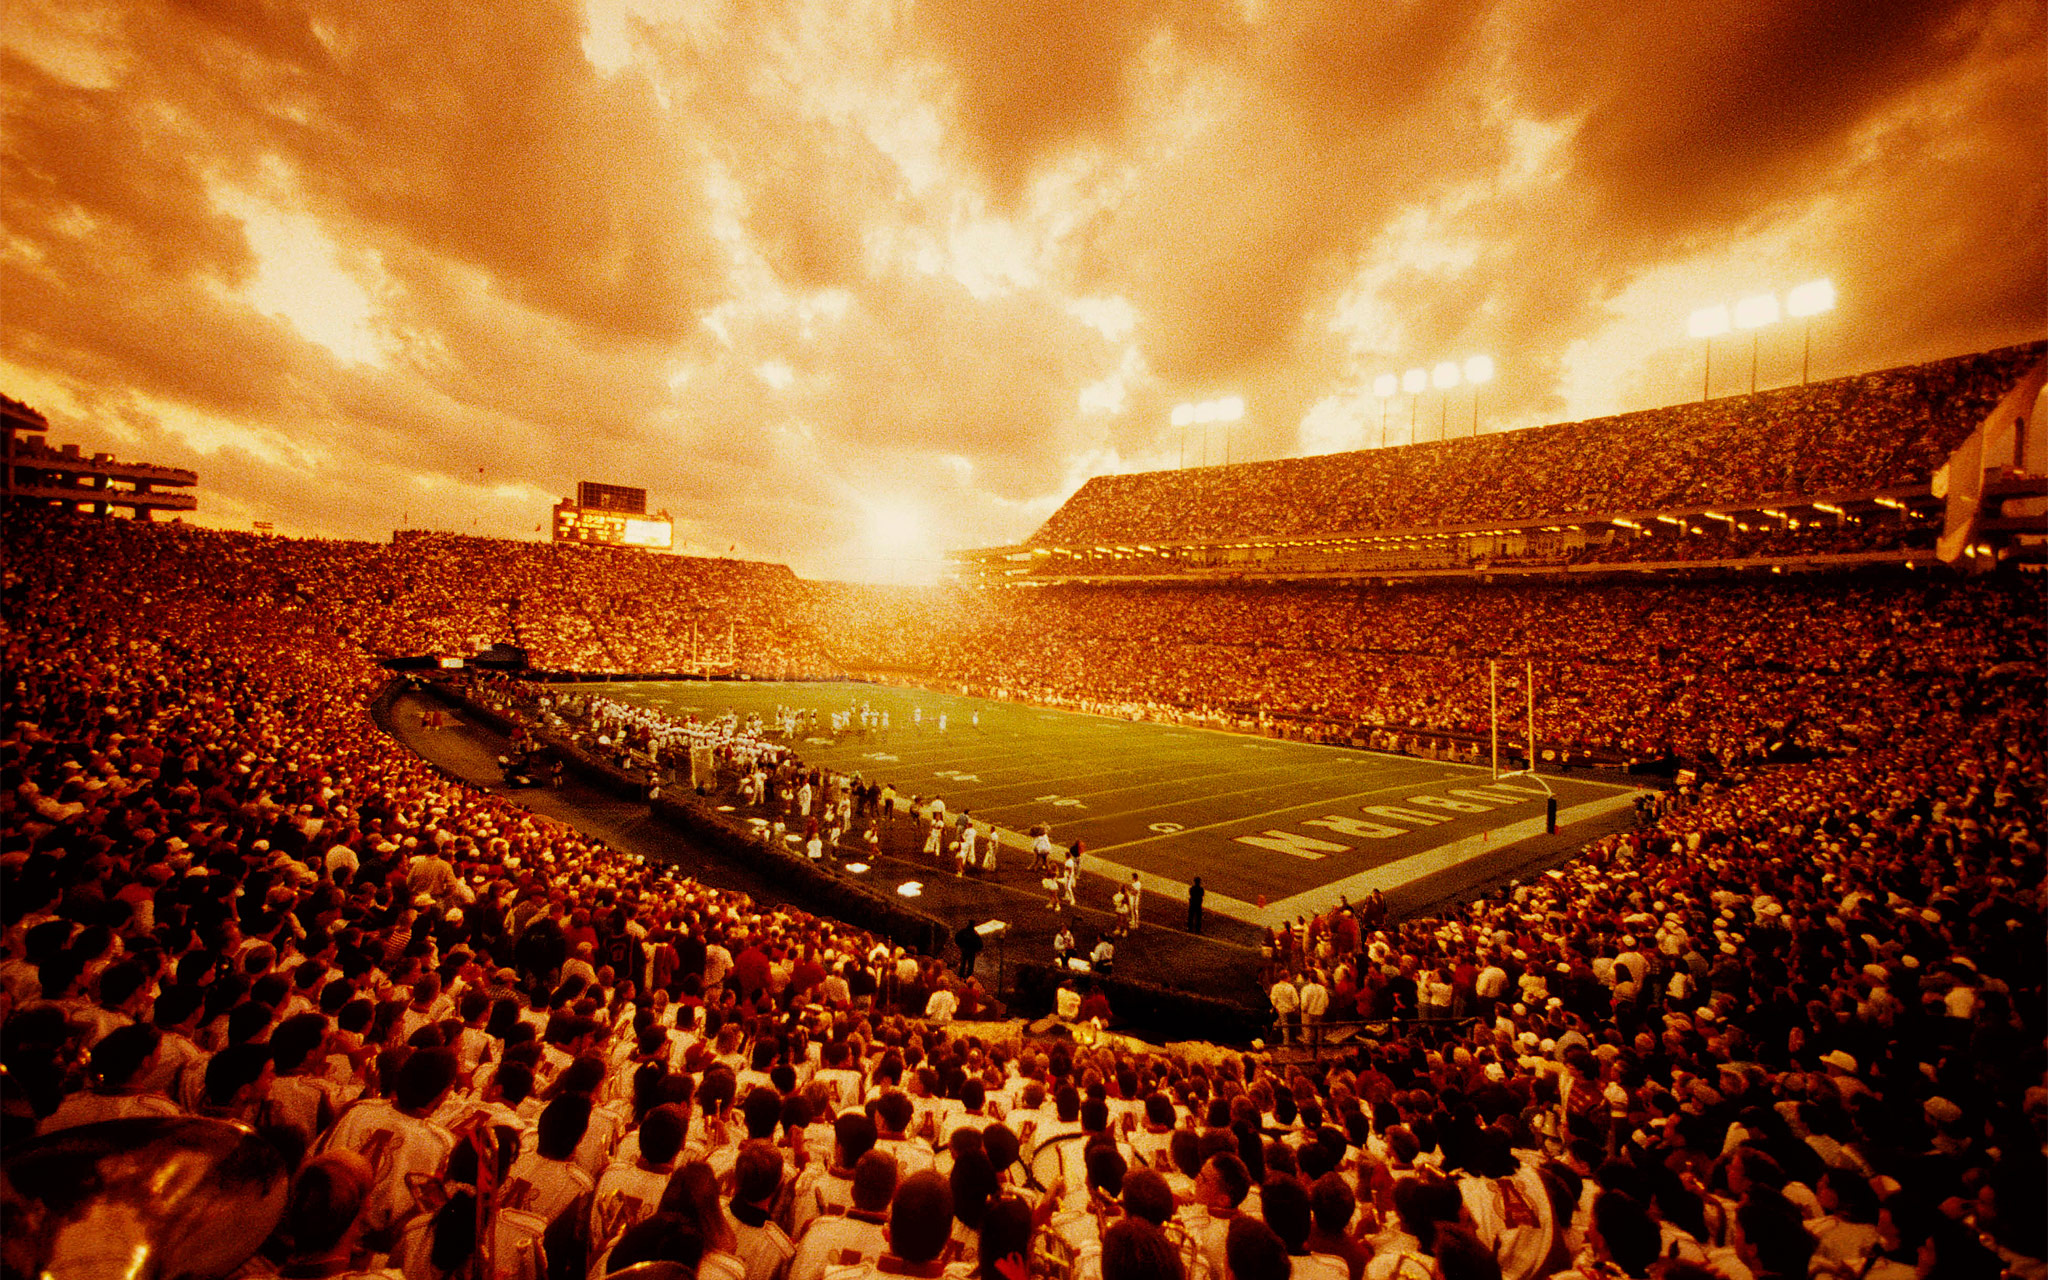 Boston In The Fall Wallpaper Jordan Hare Stadium Alabama Auburn Rivalry Gallery Espn